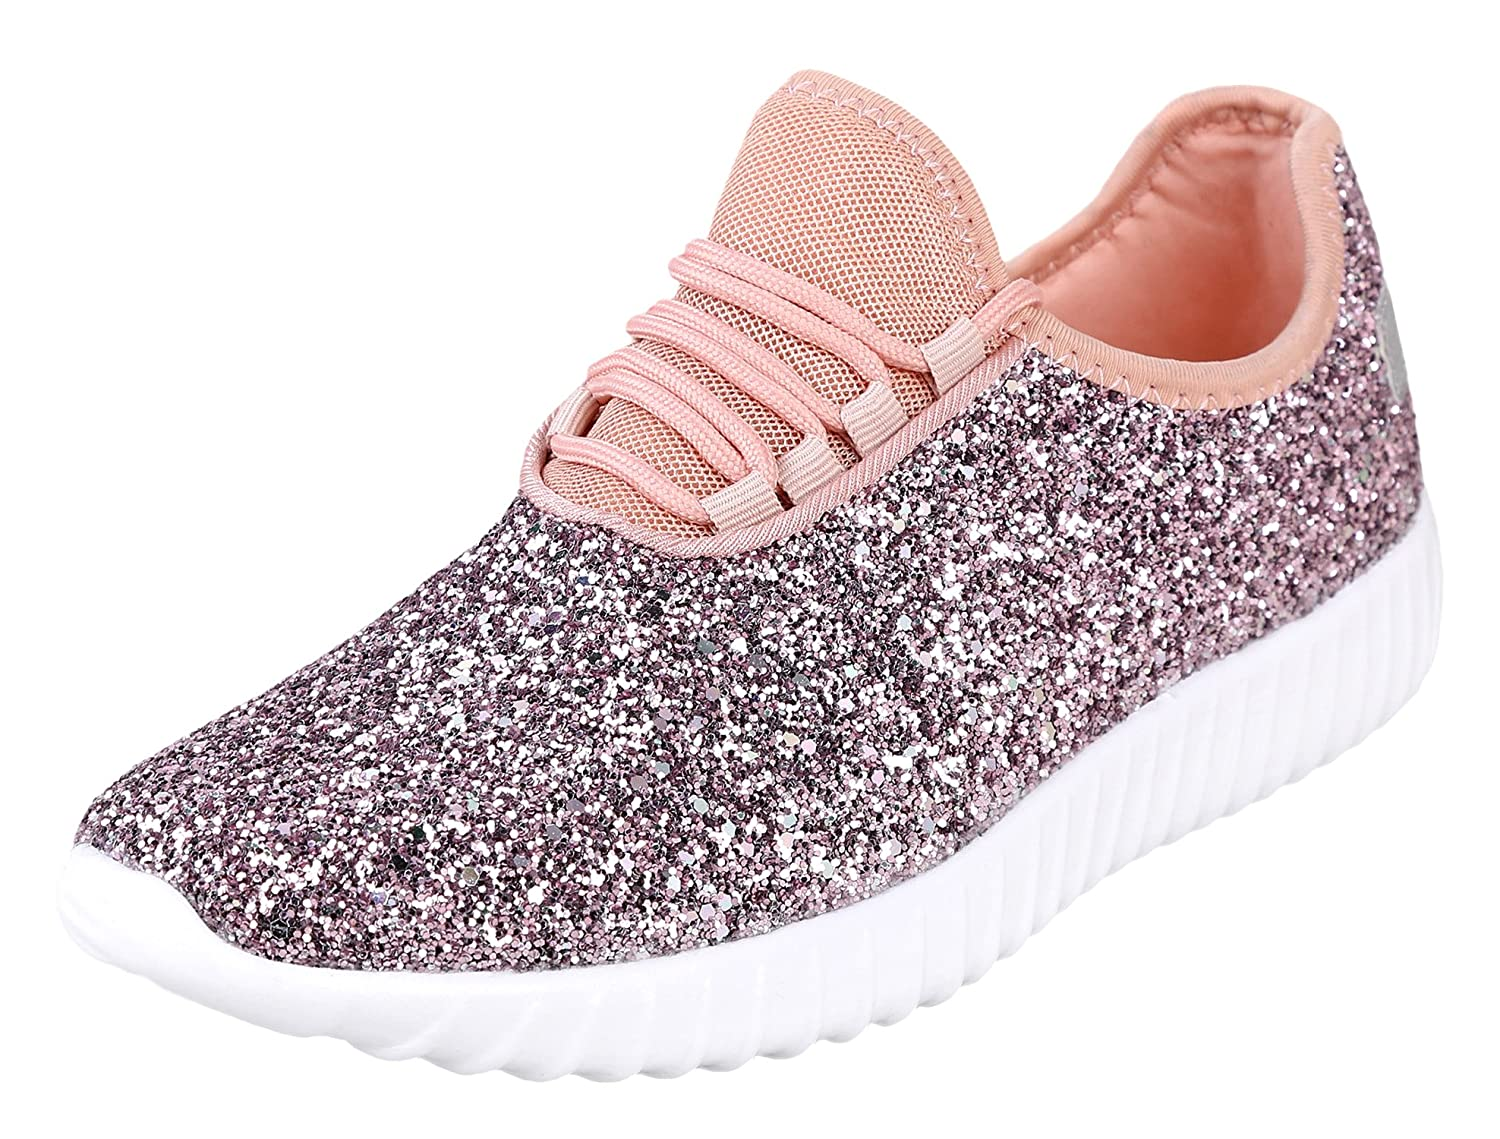 Foxy Grey Allison Womens Sneakers | Glitter Shoes for Women | Fashion Sneakers | Sparkly Shoes for Women | Casual Shoes B07BYG4PGS 6.5 B(M) US|Pink